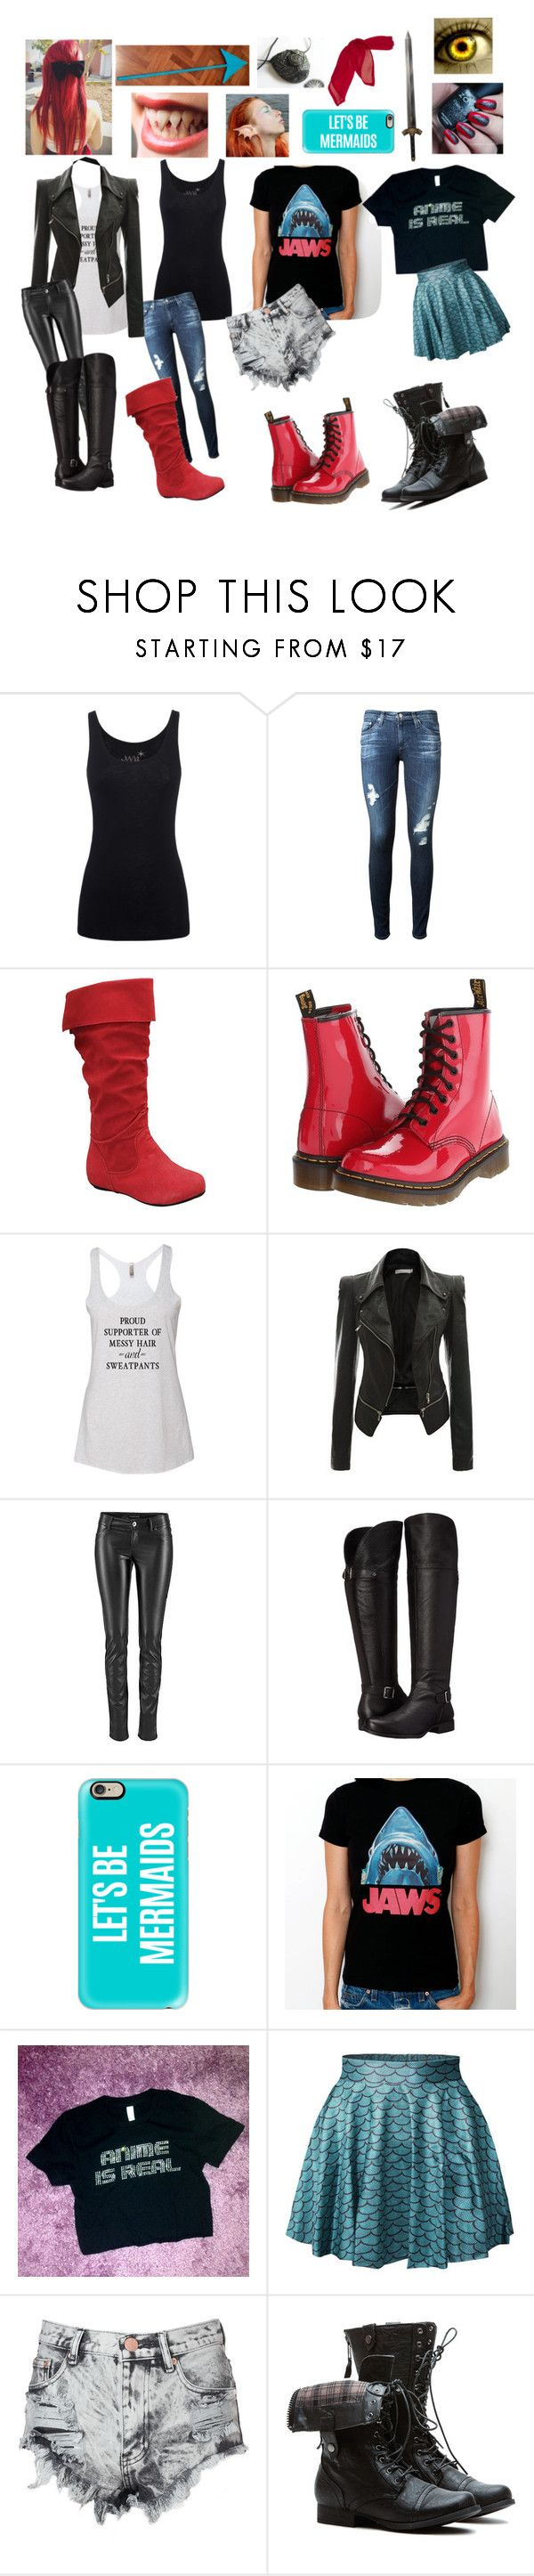 """""""Undertale: Undyne"""" by cartoonvillian ❤ liked on Polyvore featuring Juvia, AG Adriano Goldschmied, Dr. Martens, Naturalizer, Casetify, Glamorous and Villain"""